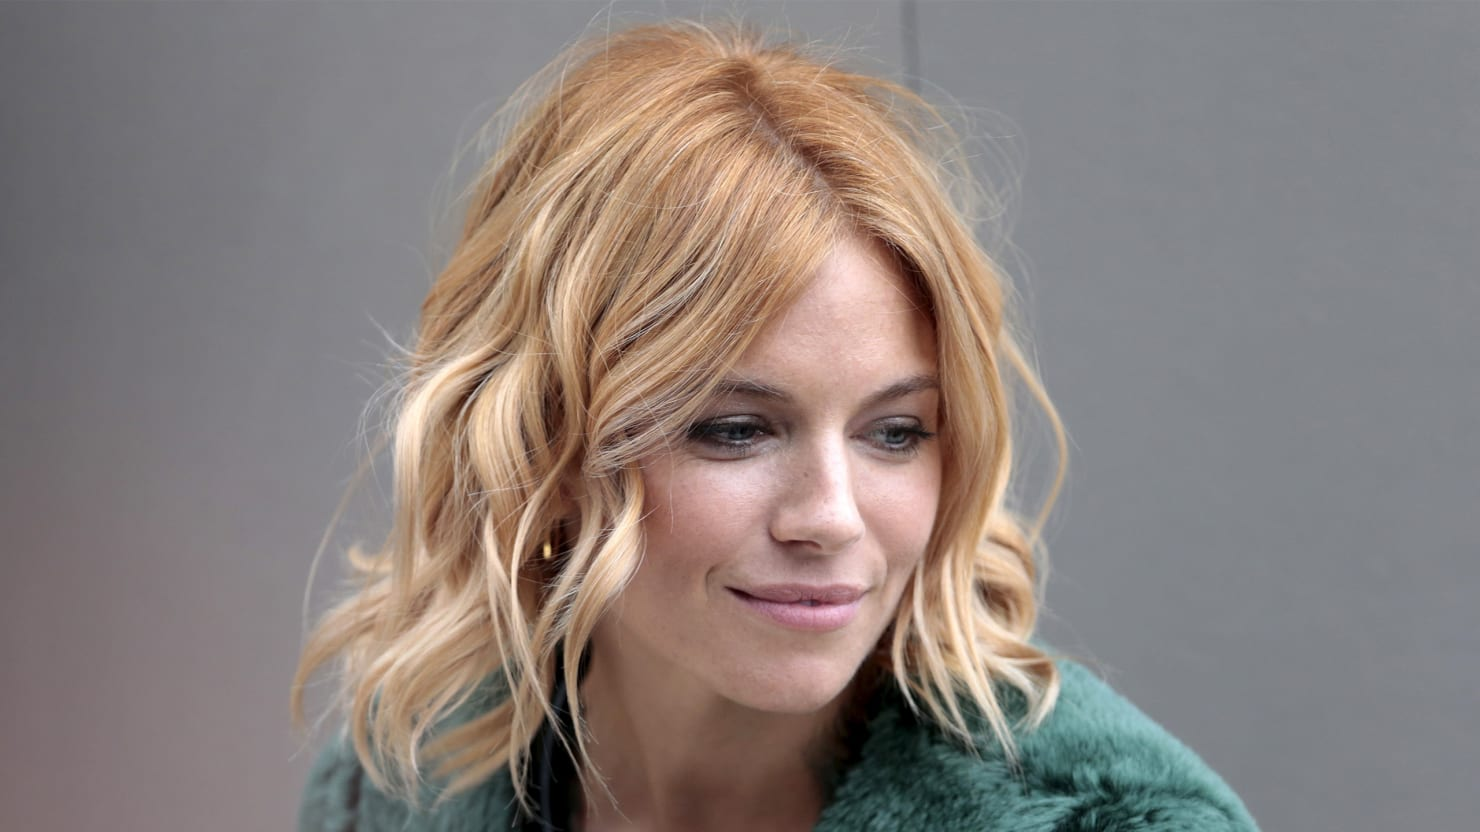 Sienna Miller's Role Has Been Cut From Black Mass Sienna Miller's Role Has Been Cut From Black Mass new photo